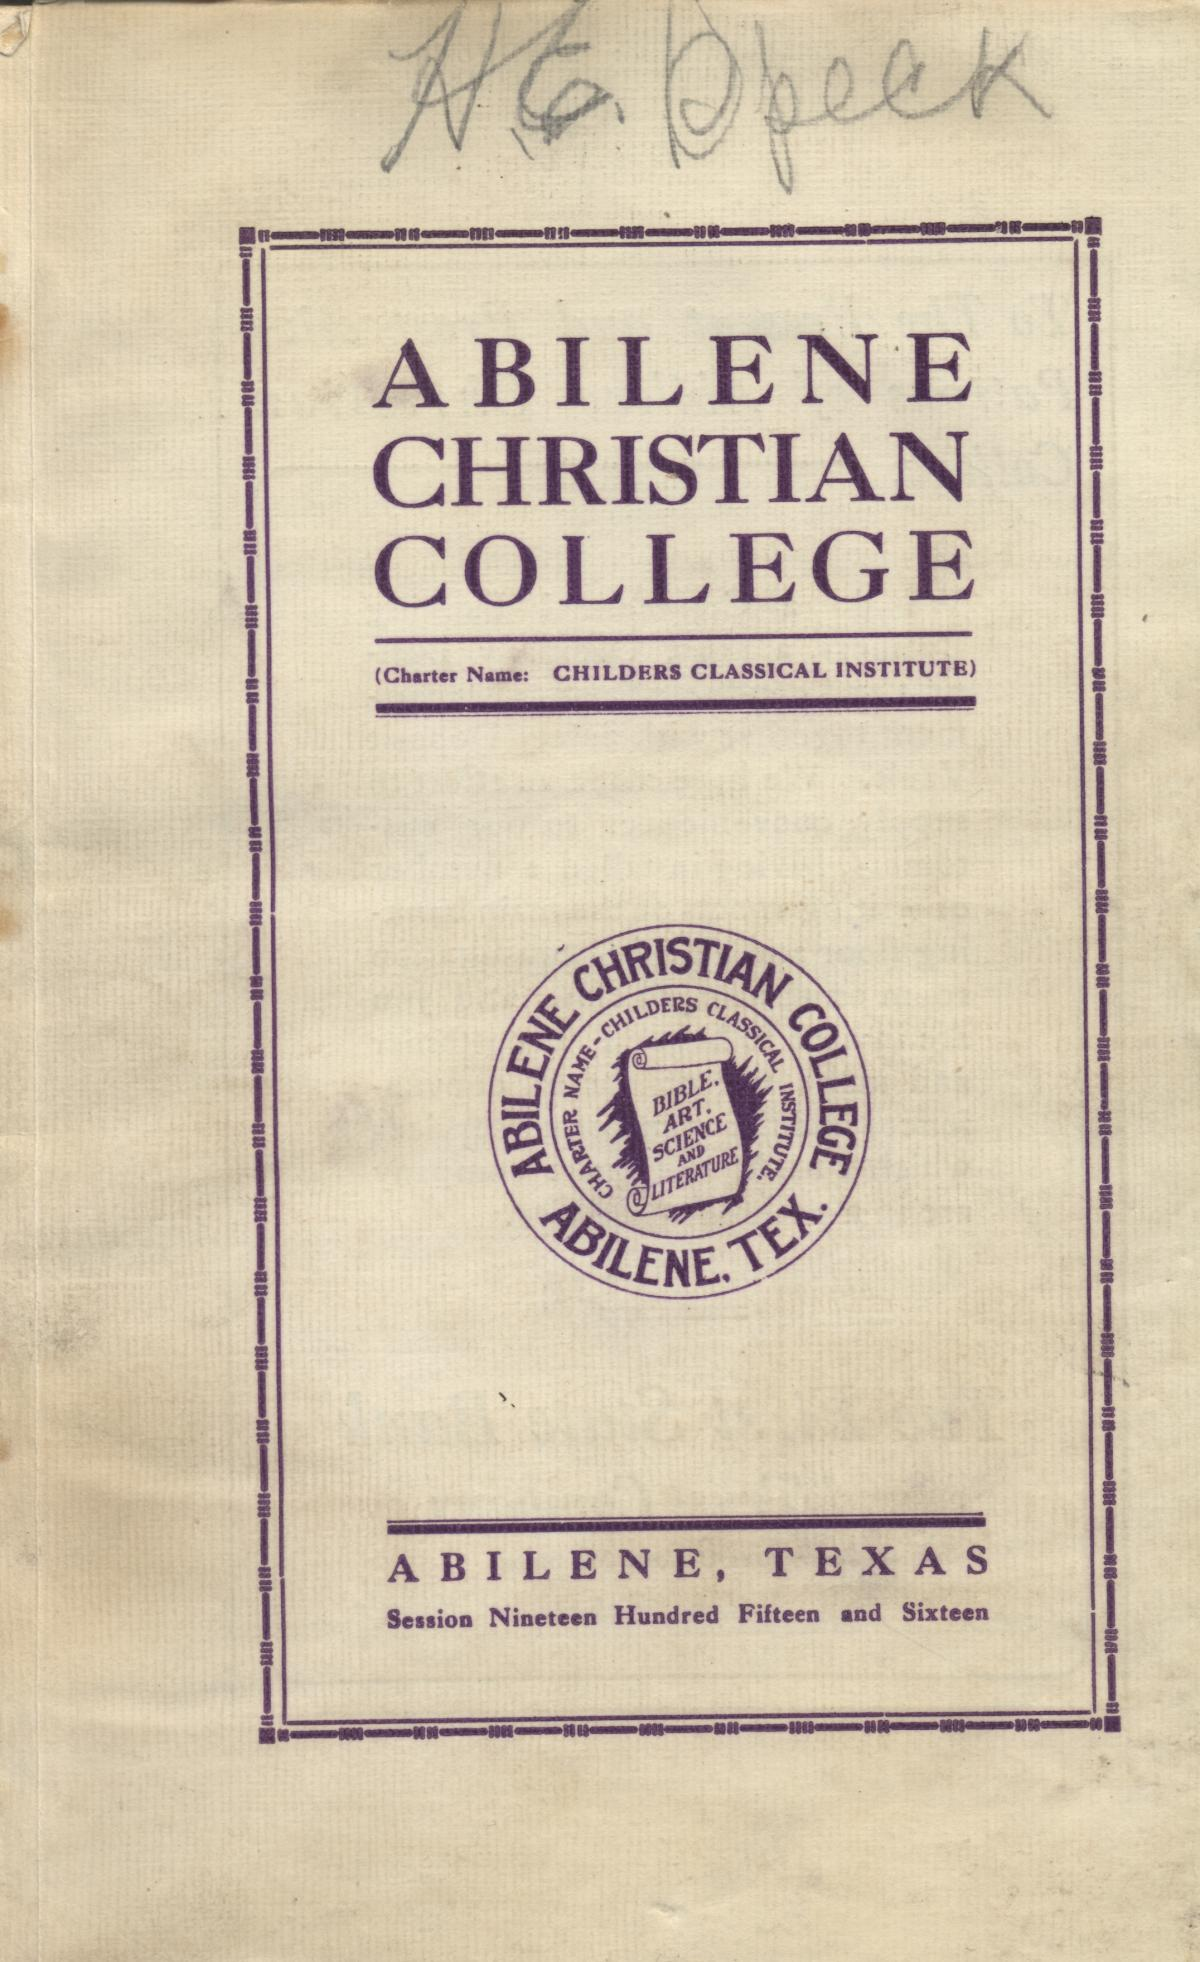 Catalog of Abilene Christian College, 1915-1916                                                                                                      [Sequence #]: 1 of 78